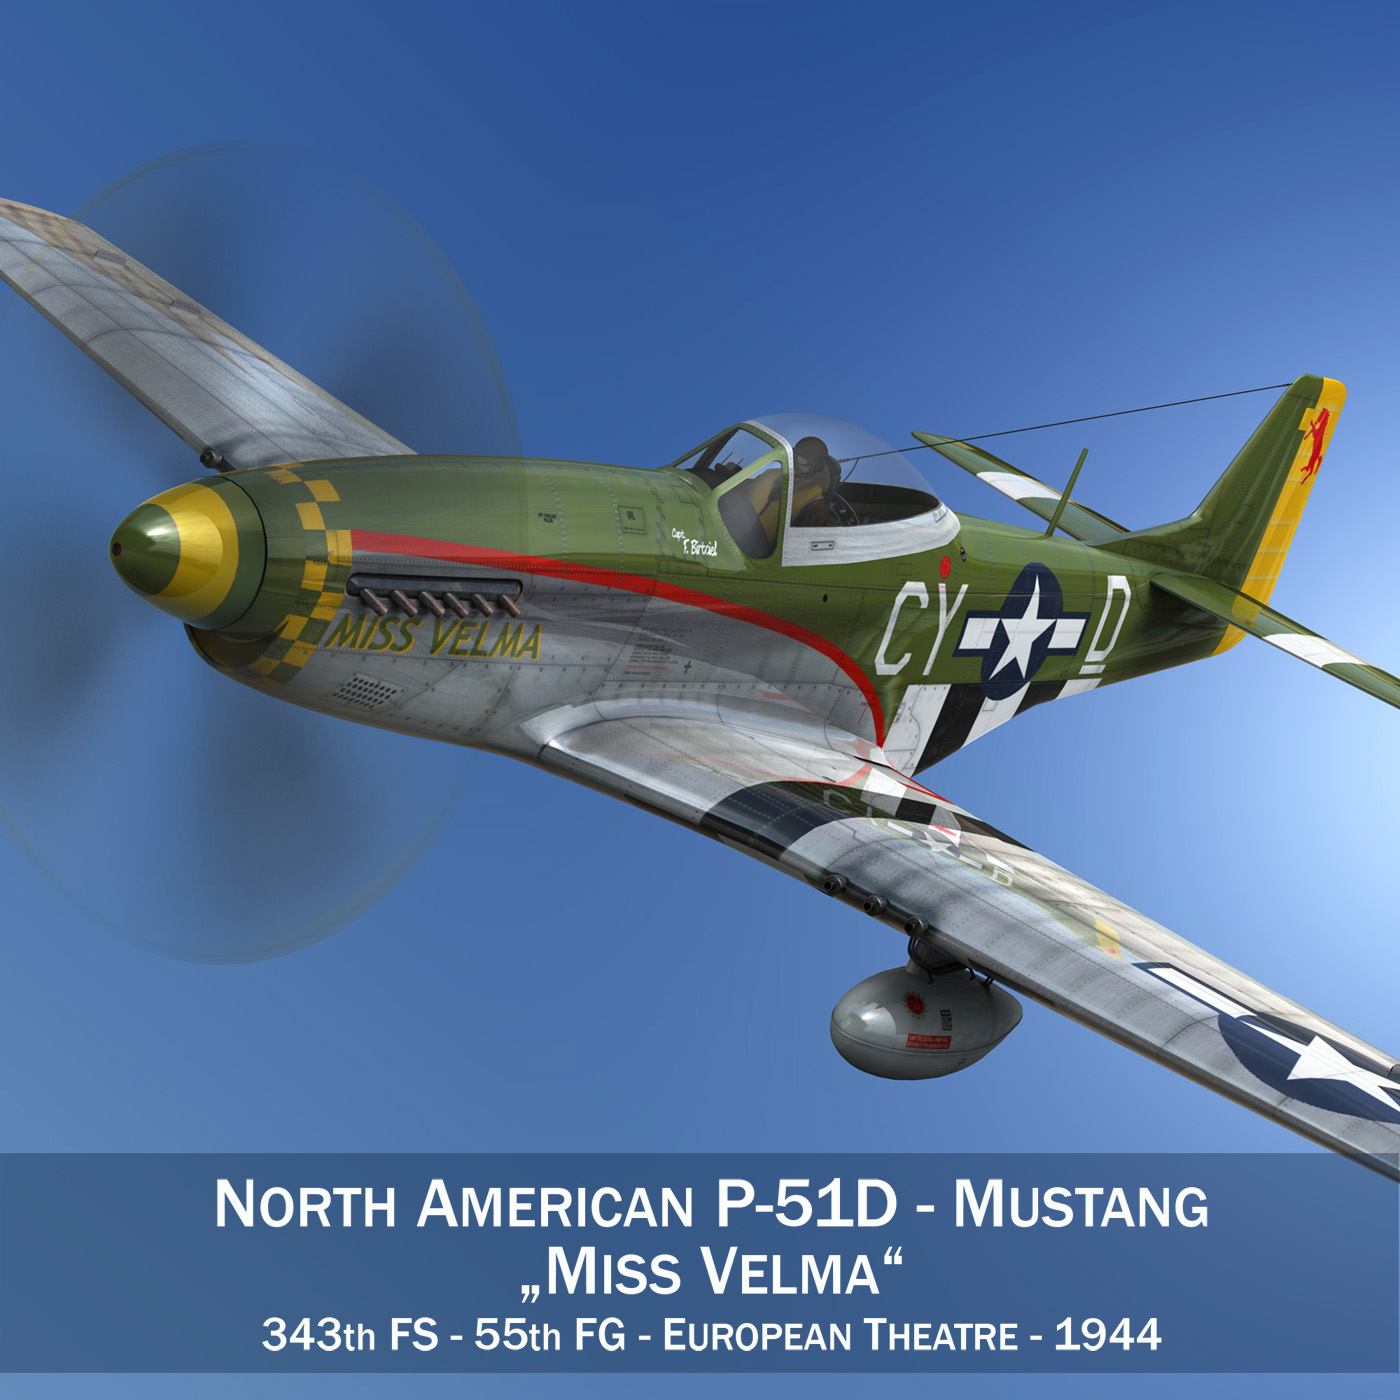 north american p-51d – mustang – miss velma 3d model 3ds fbx c4d lwo obj 267617